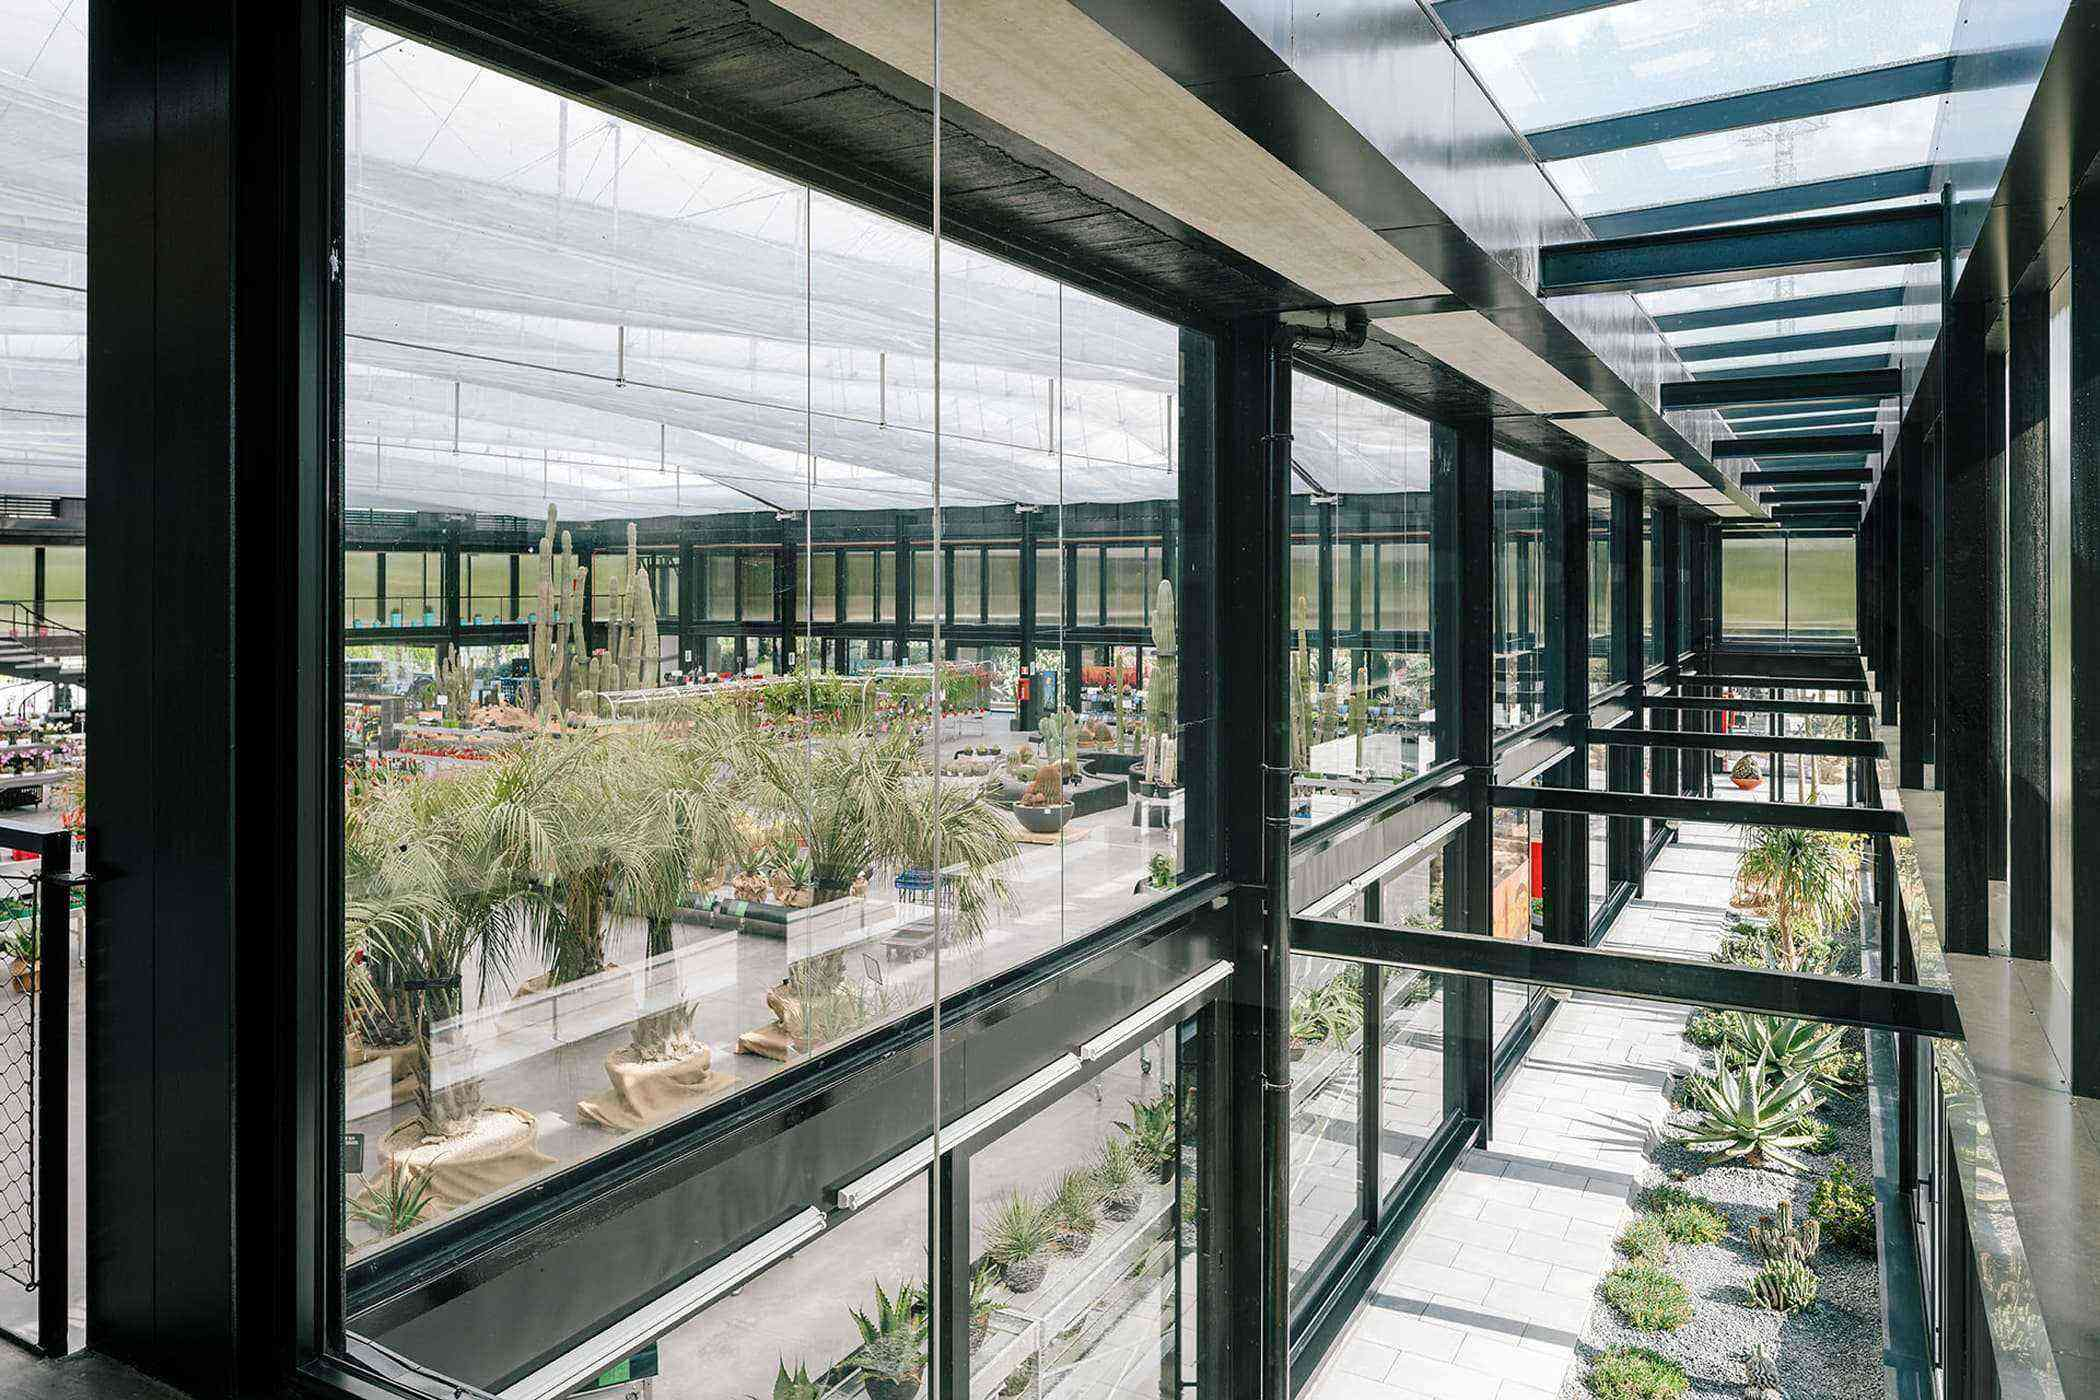 New desert city in madrid has over 400 species of cactus - Garden center madrid ...